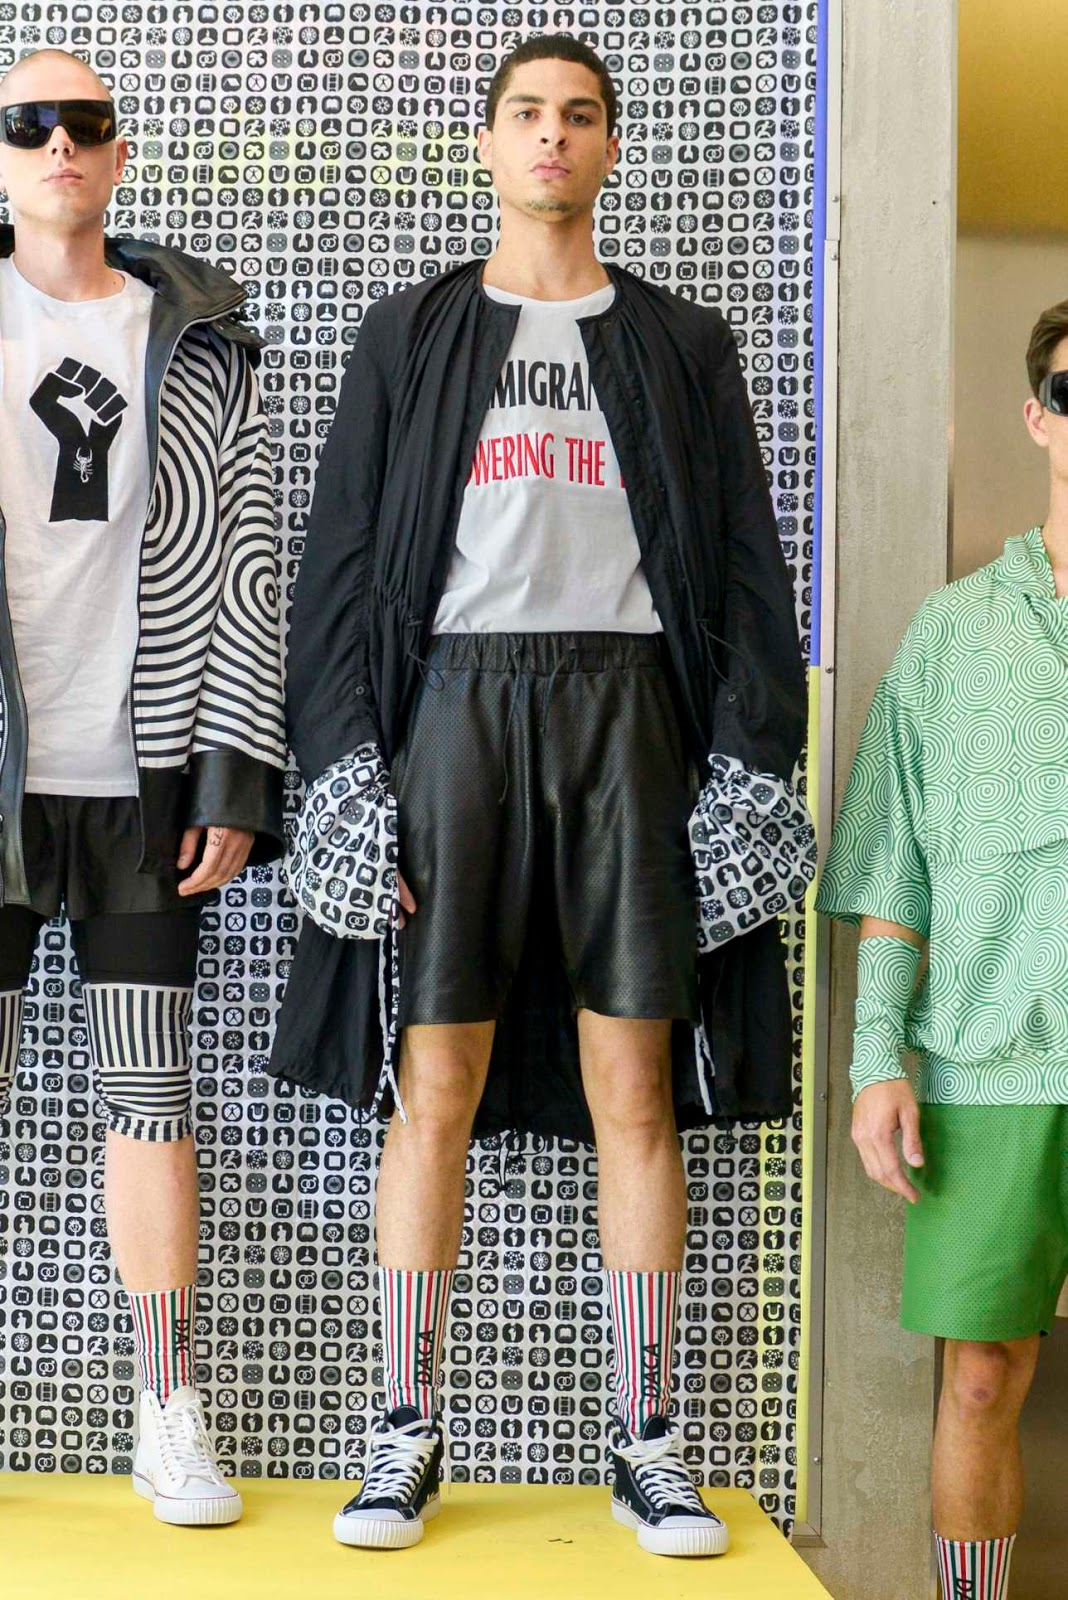 New York Fashion Show >> Ricardo Seco Spring-Summer 2019 - New York Fashion Week Men's - Male Fashion Trends